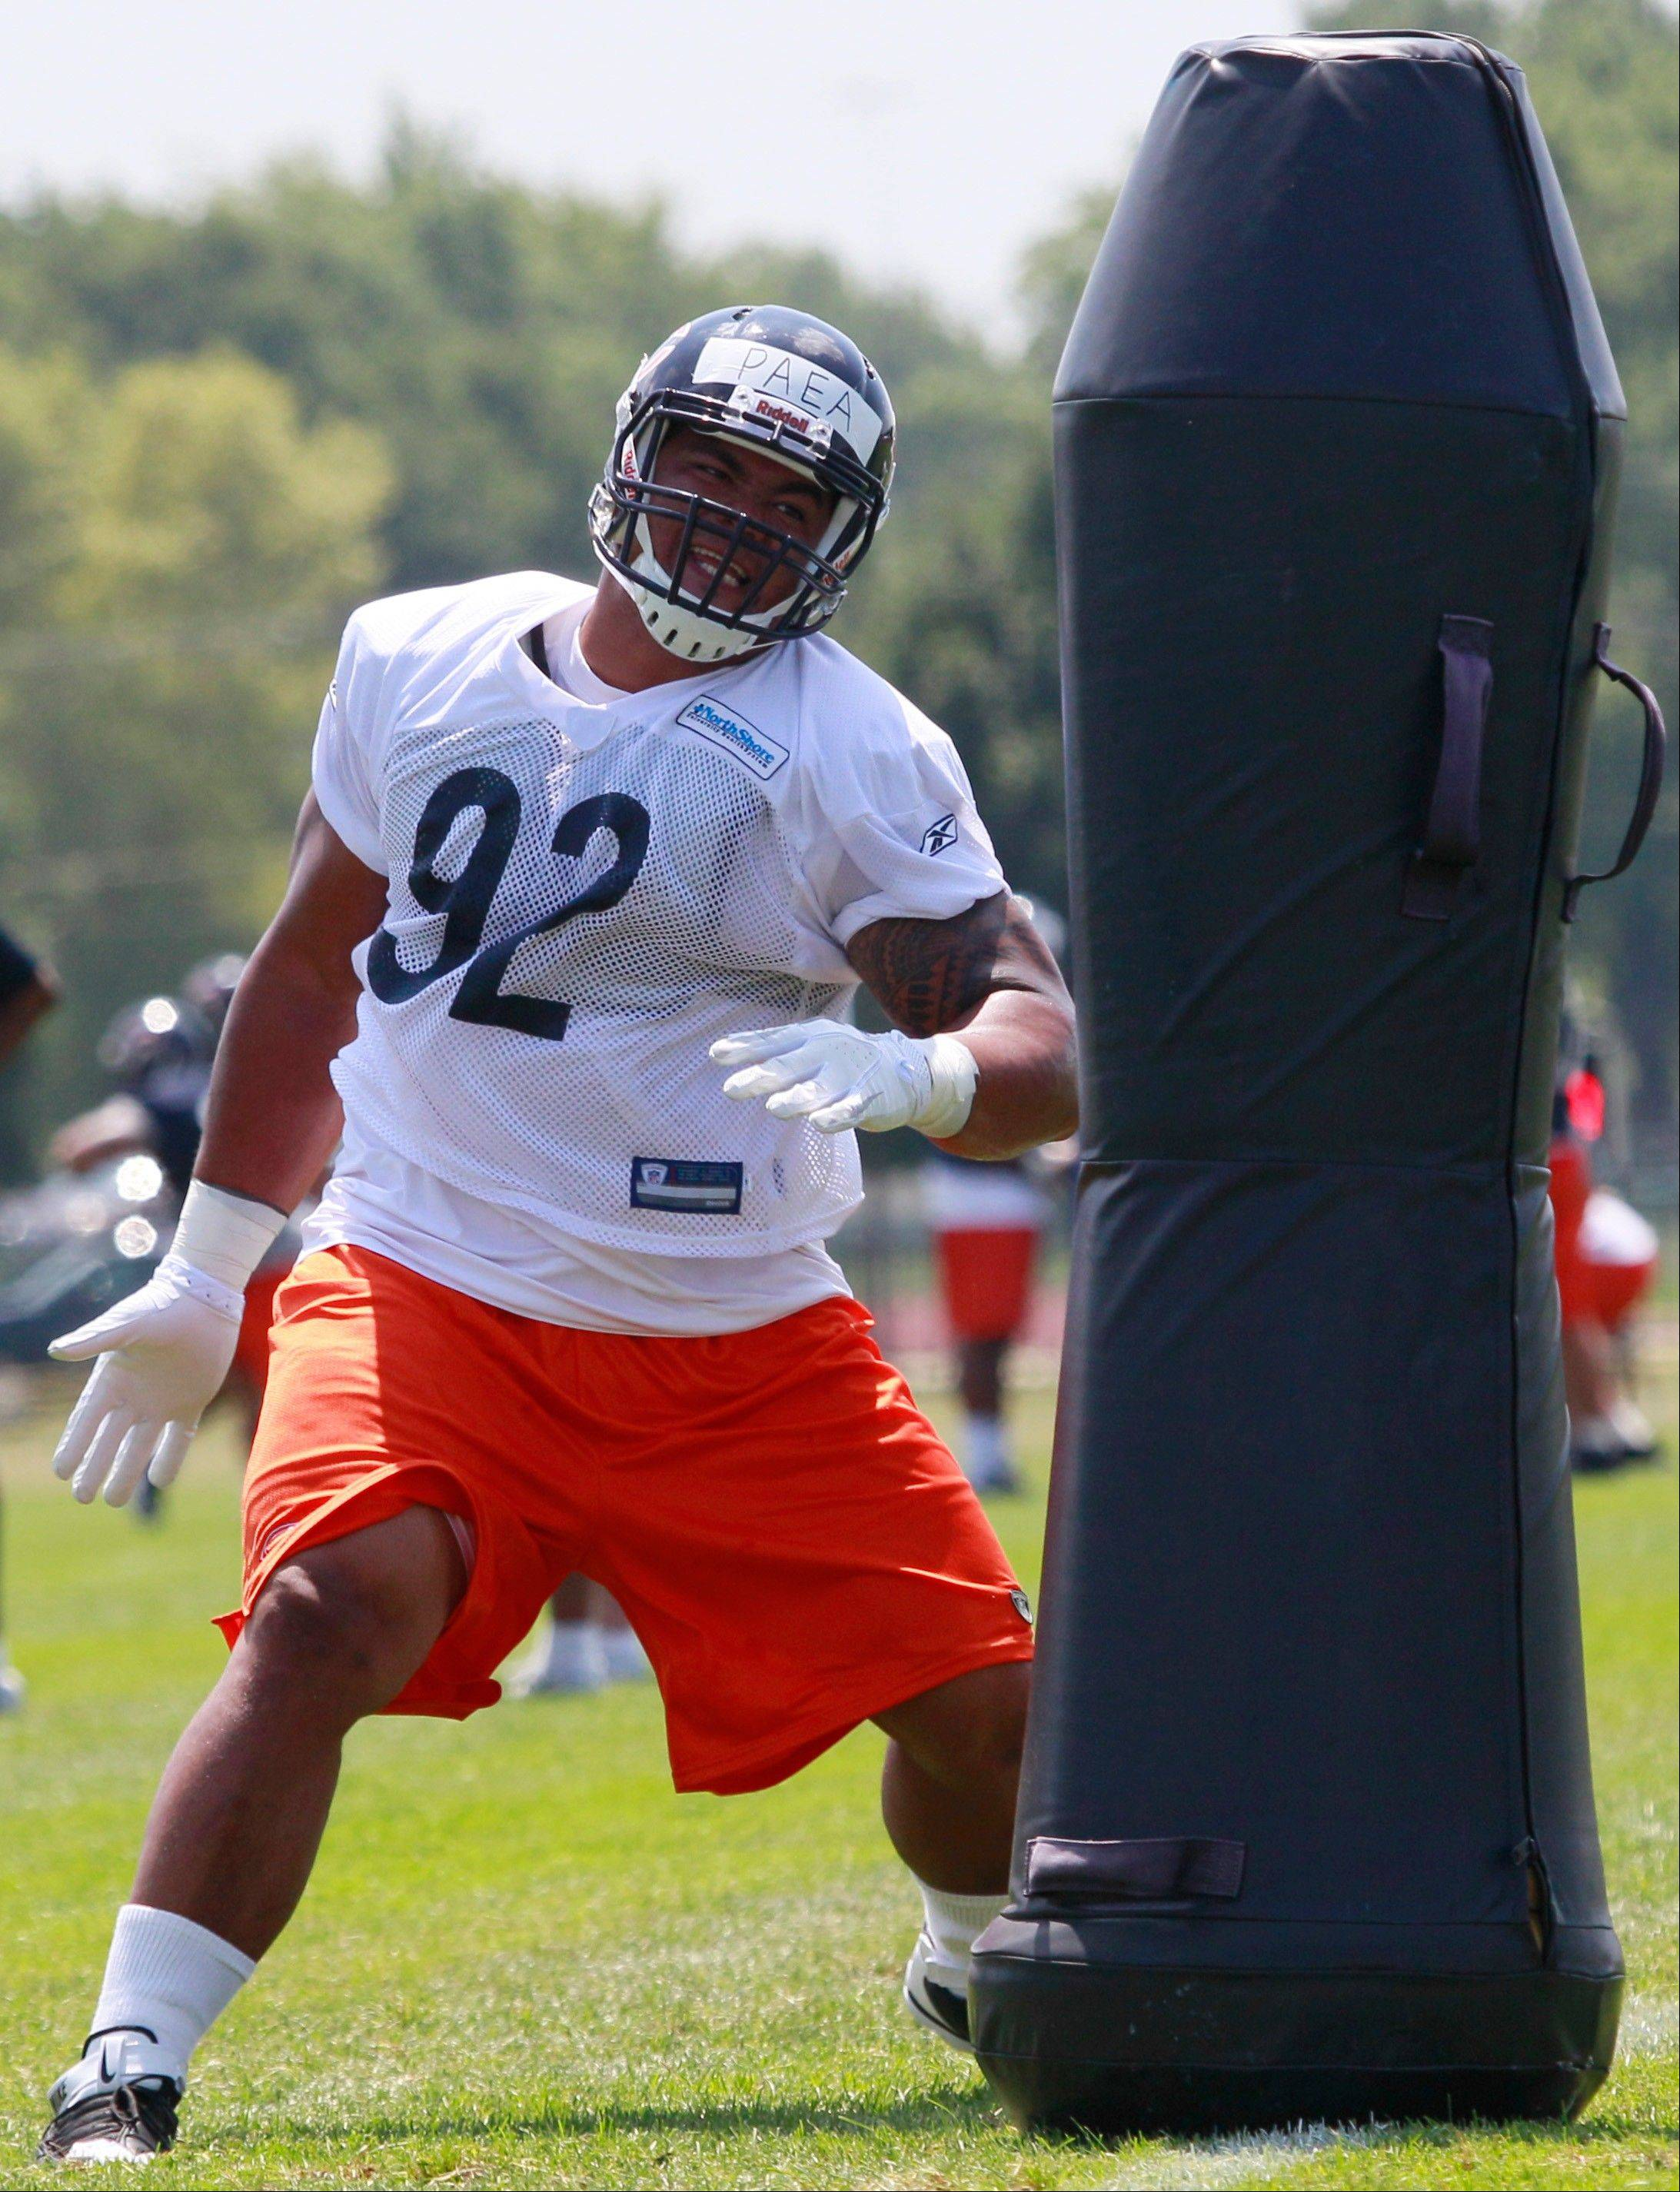 Chicago Bears' Stephen Paea works out during NFL football training camp Sunday at Olivet Nazarene University in Bourbonnais.